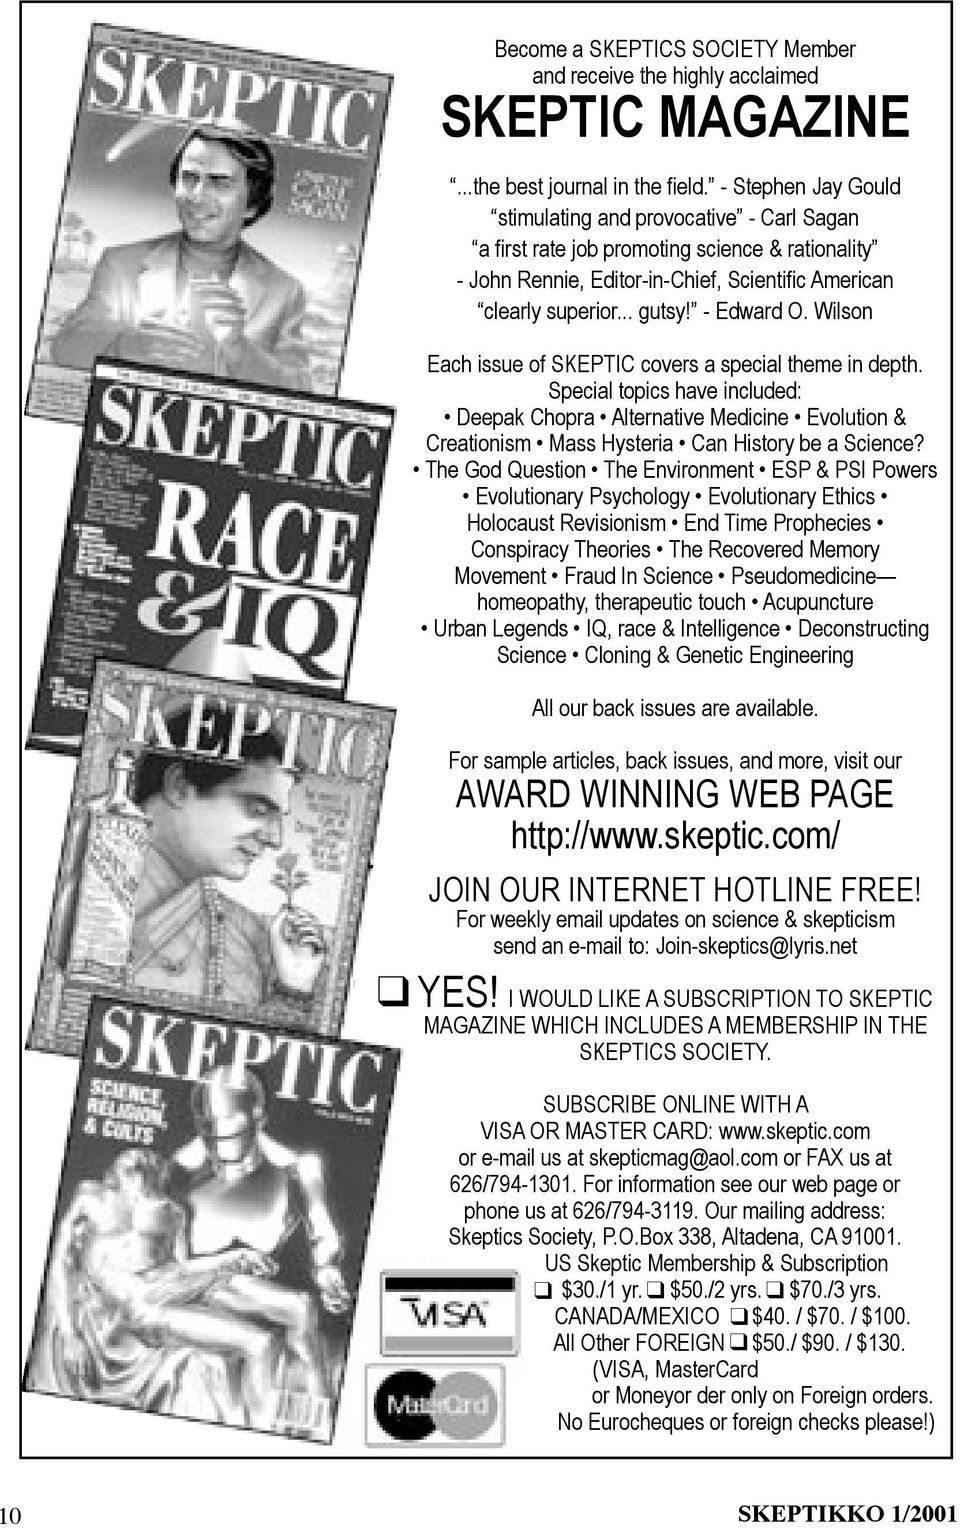 Wilson Each issue of SKEPTIC covers a special theme in depth. Special topics have included: Deepak Chopra Alternative Medicine Evolution & Creationism Mass Hysteria Can History be a Science?